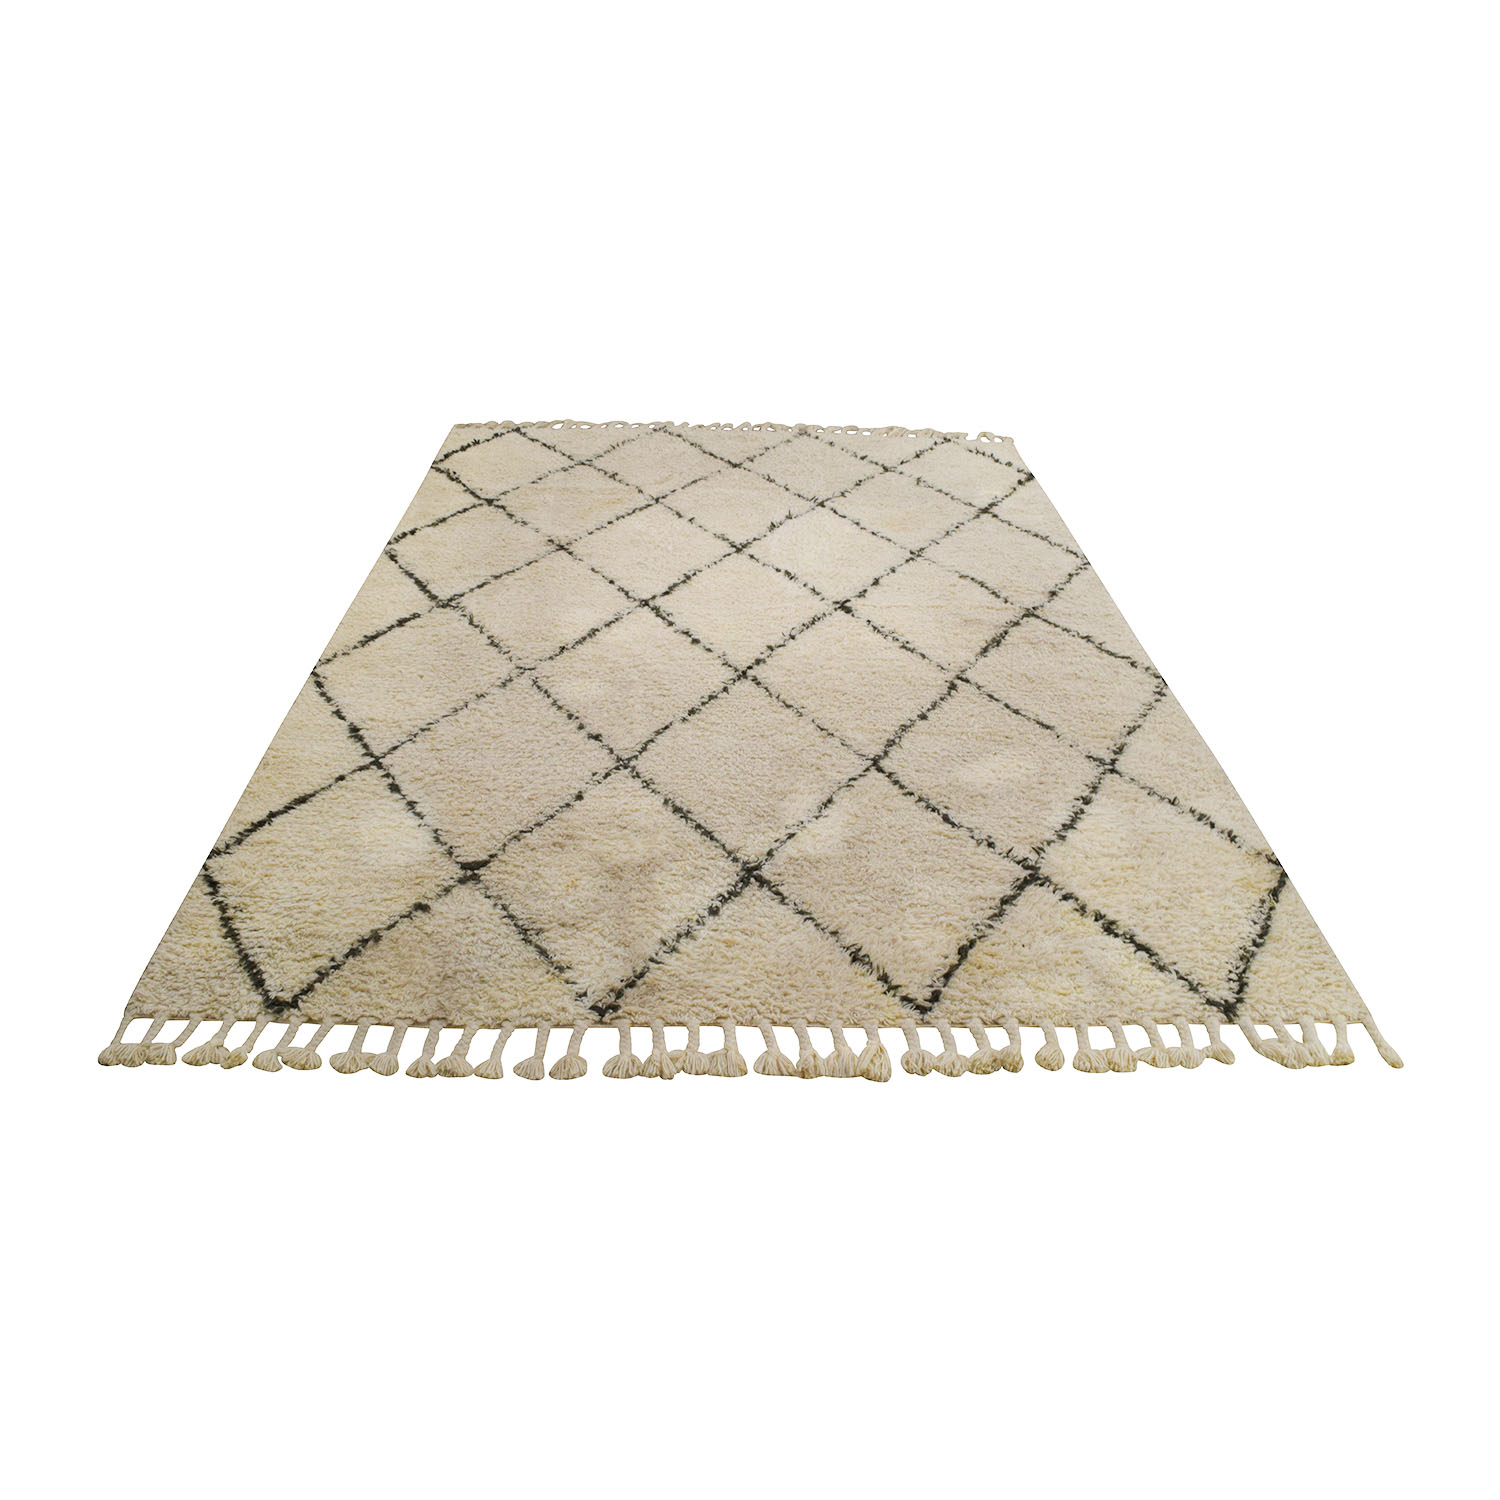 NuLOOM NuLOOM Moroccan Trellis Natural Shag Wool Rug on sale